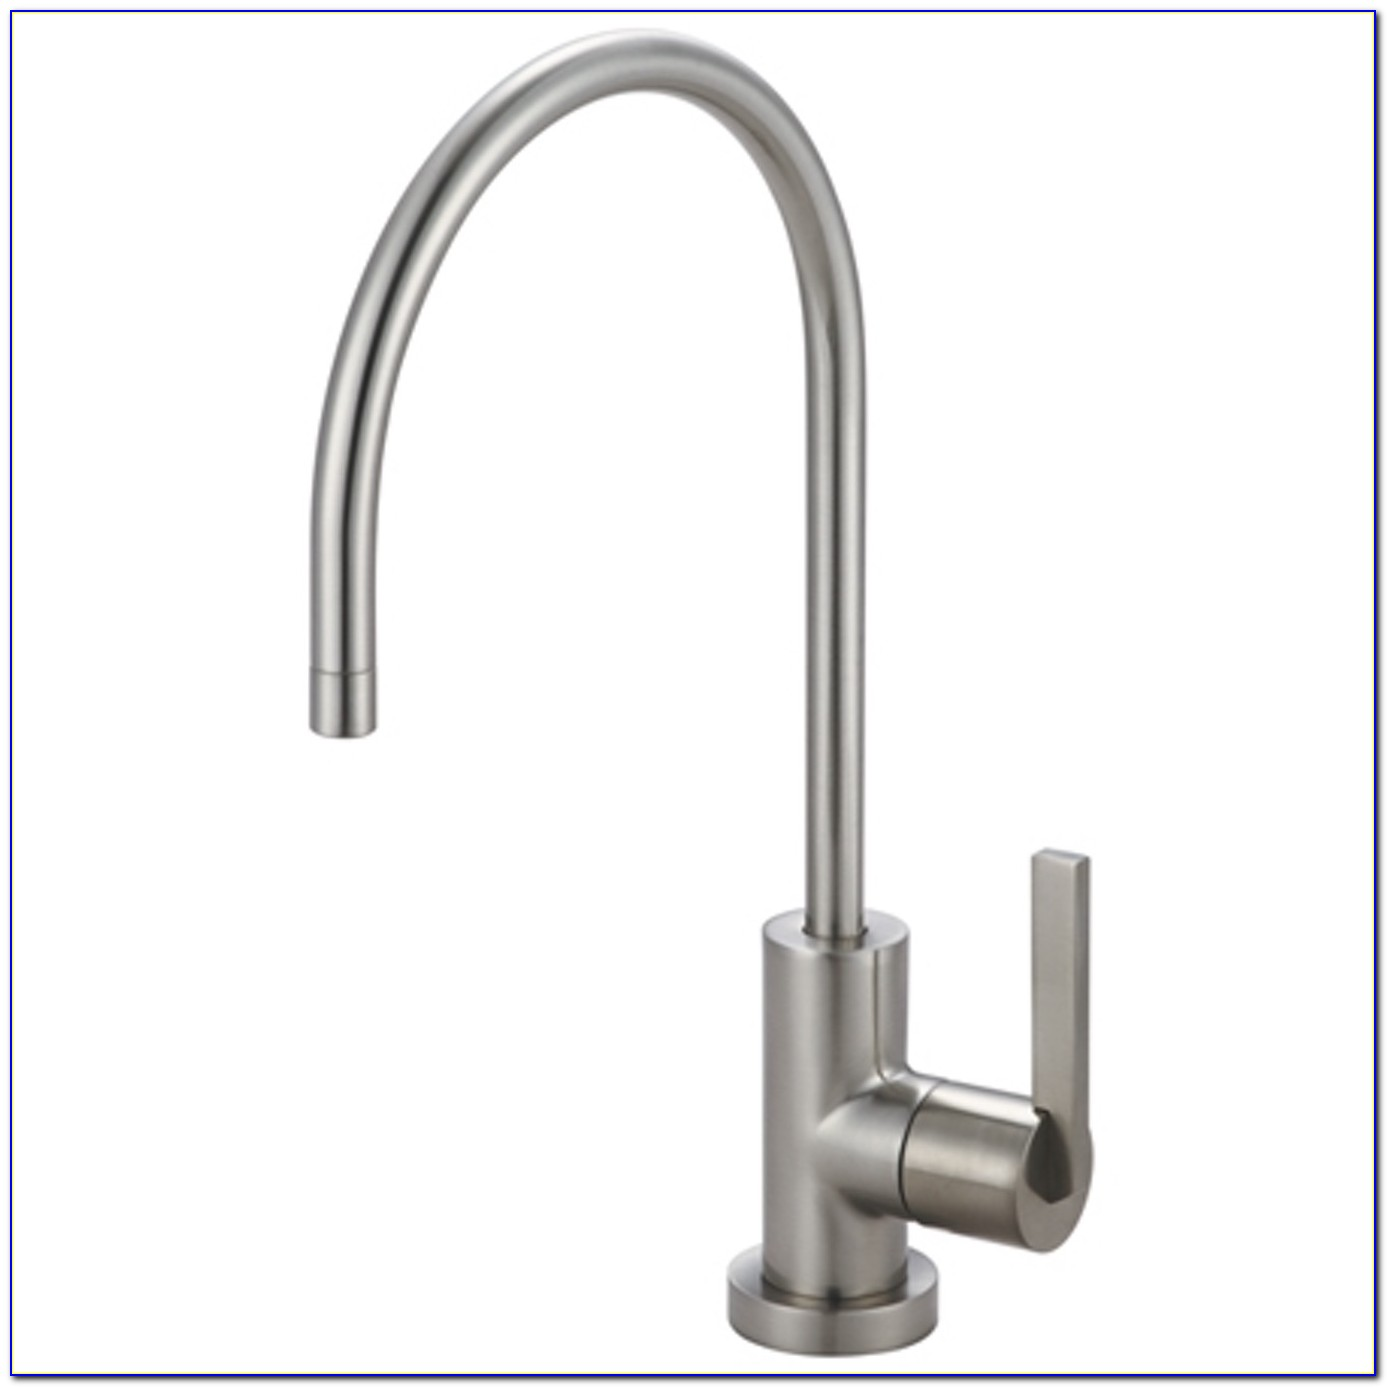 Sink Faucet Water Filter